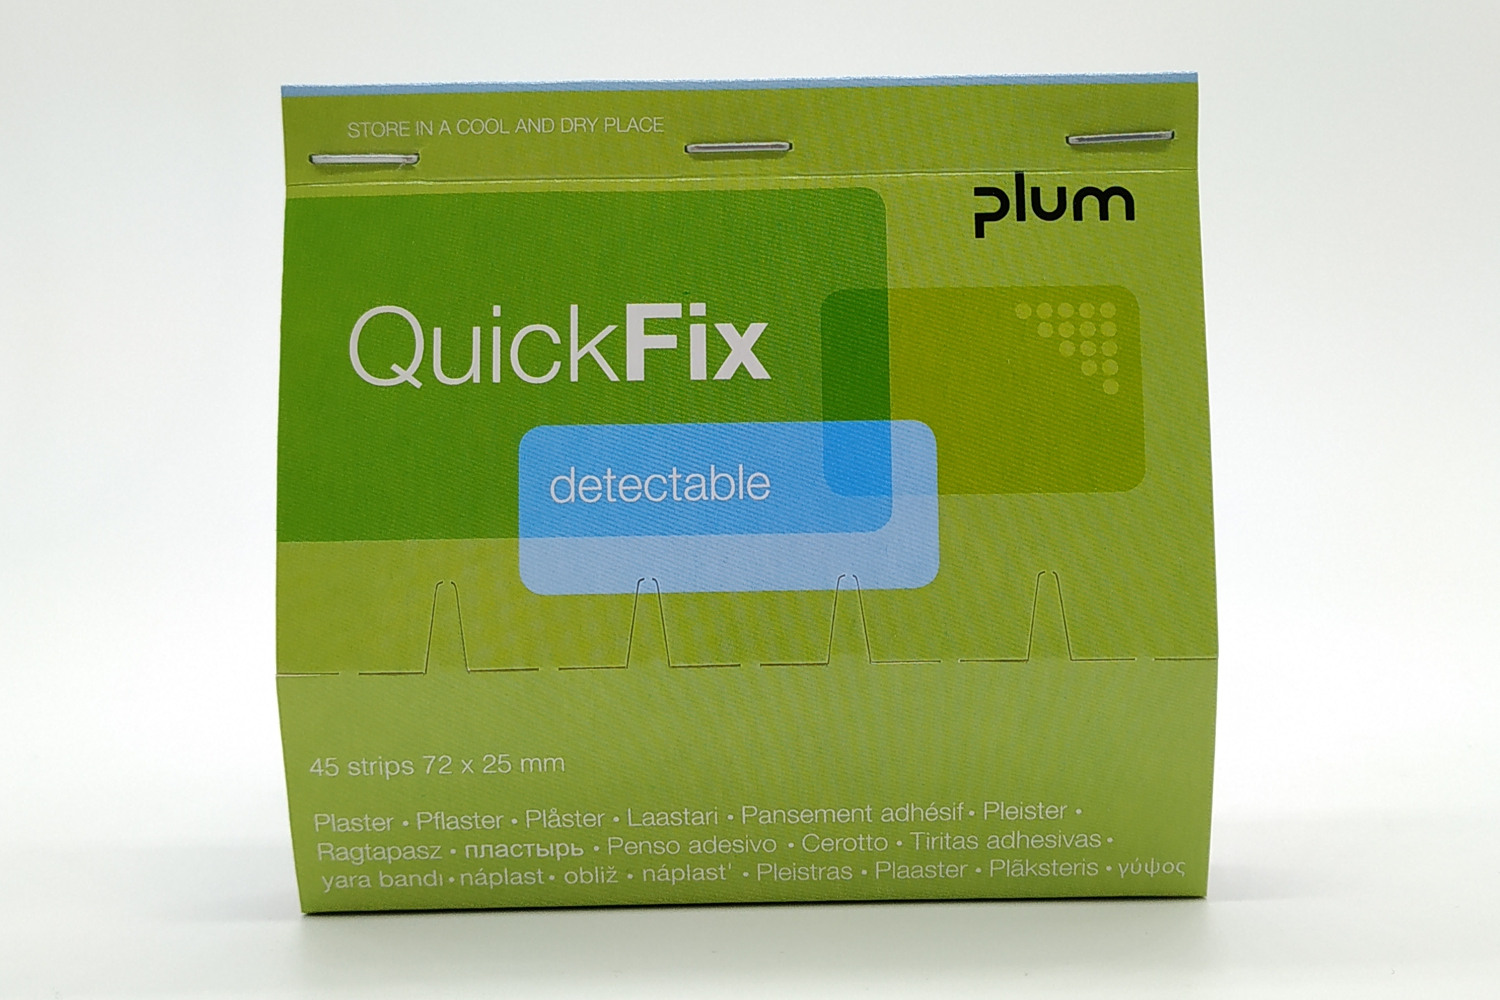 QuickFix Pflaster detectable